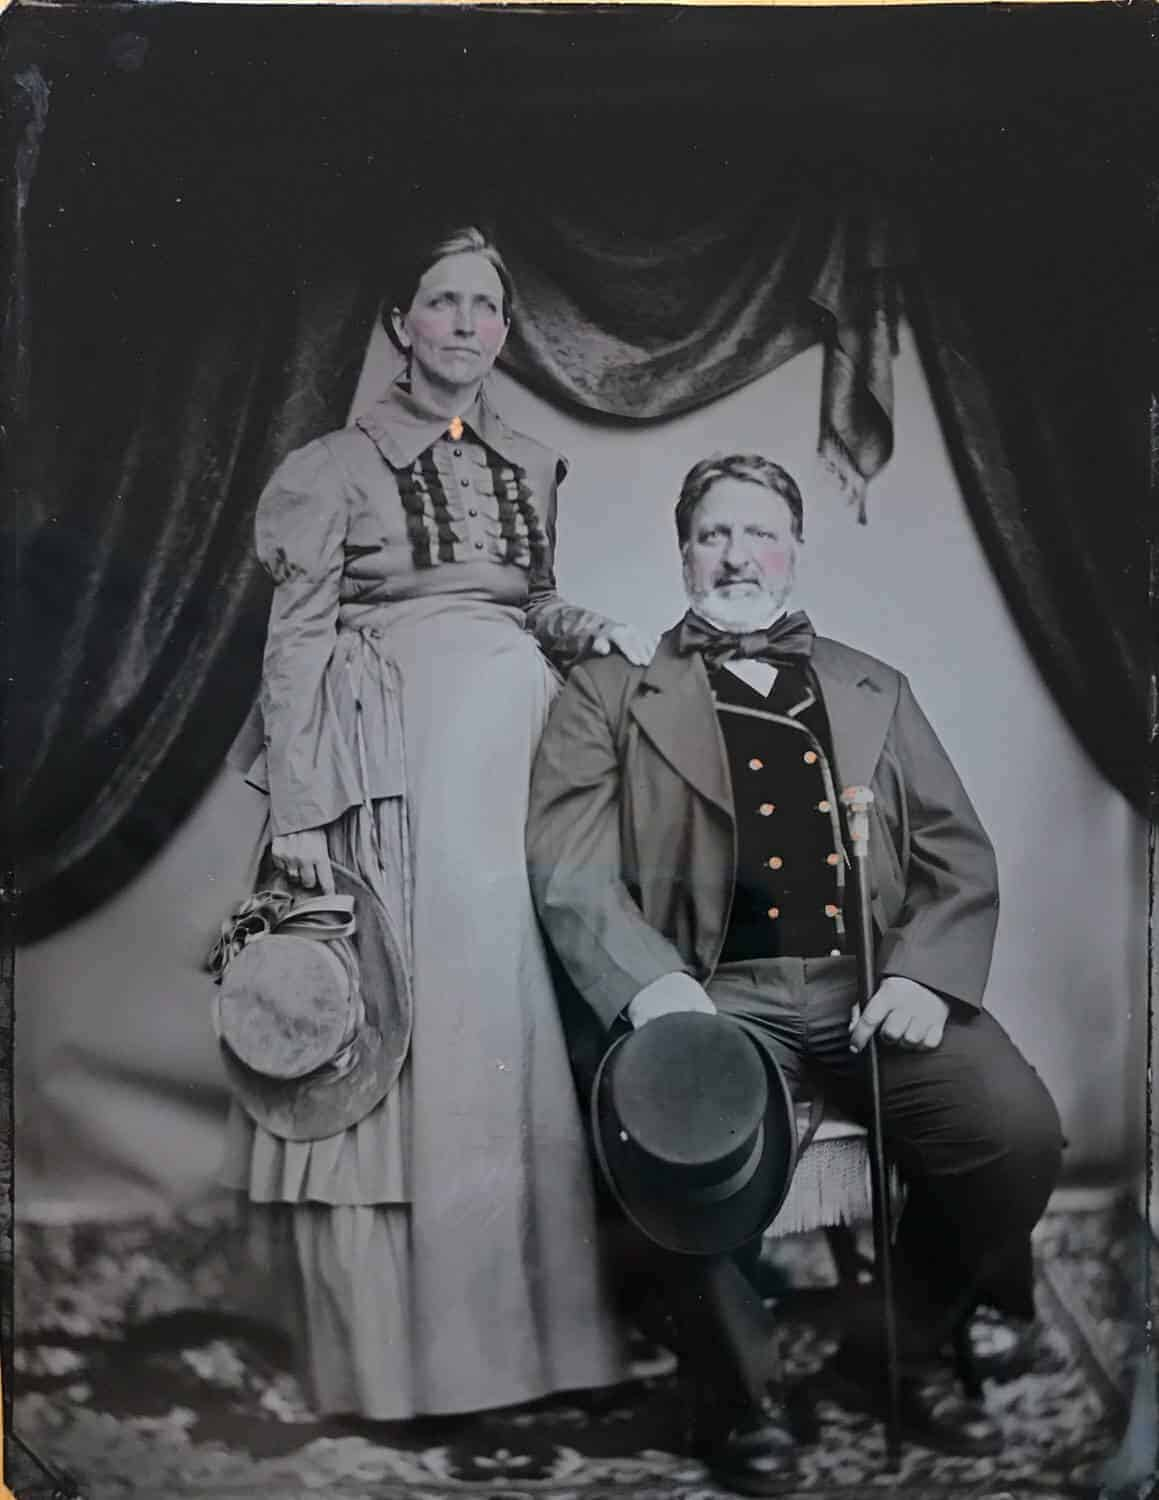 tintype at the Port Townsend Victorian Festival